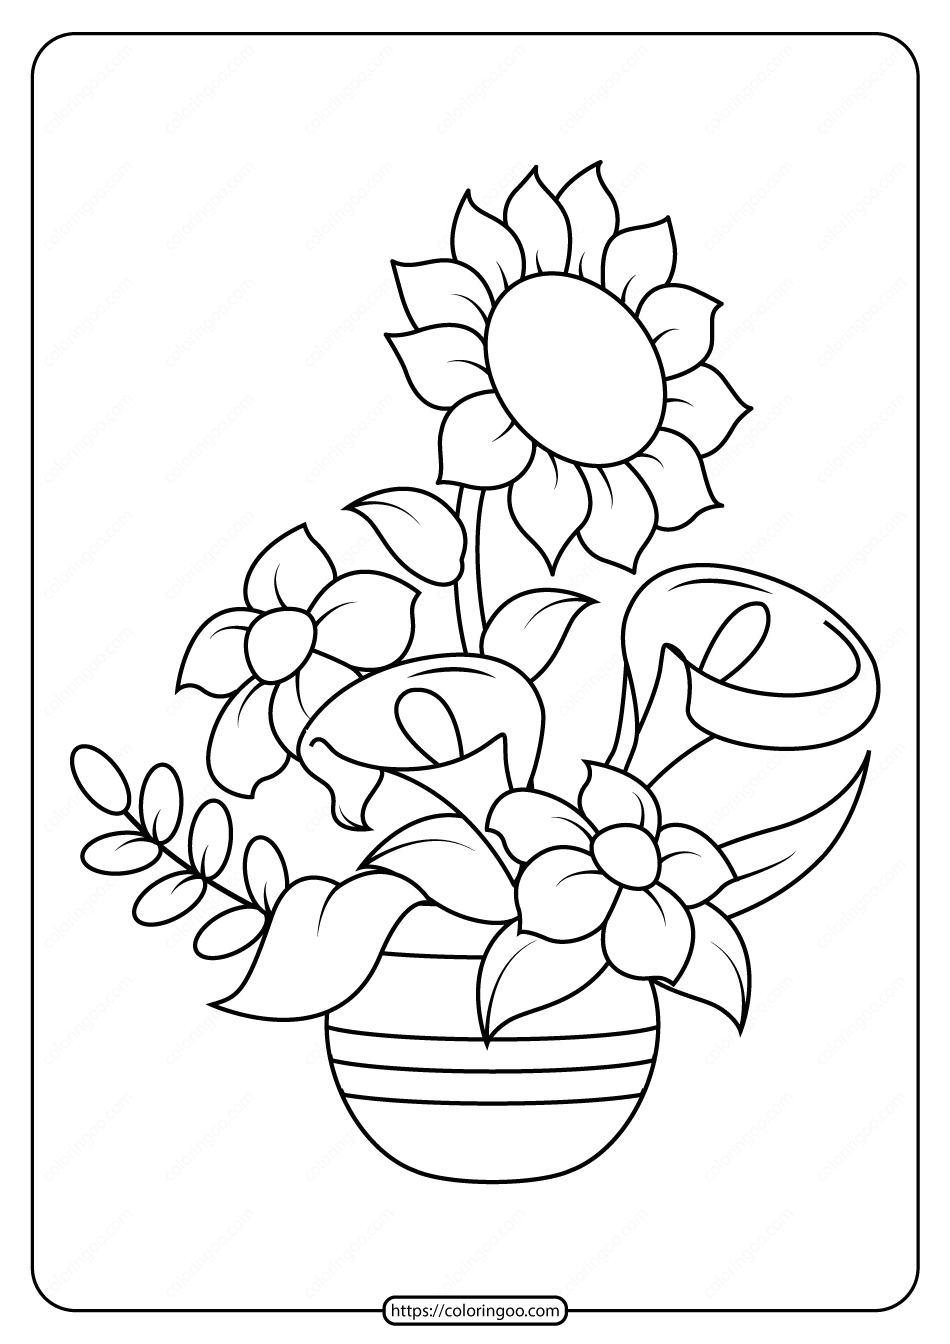 pictures of flowers to color very detailed flowers coloring pages for adults hard to pictures flowers to color of